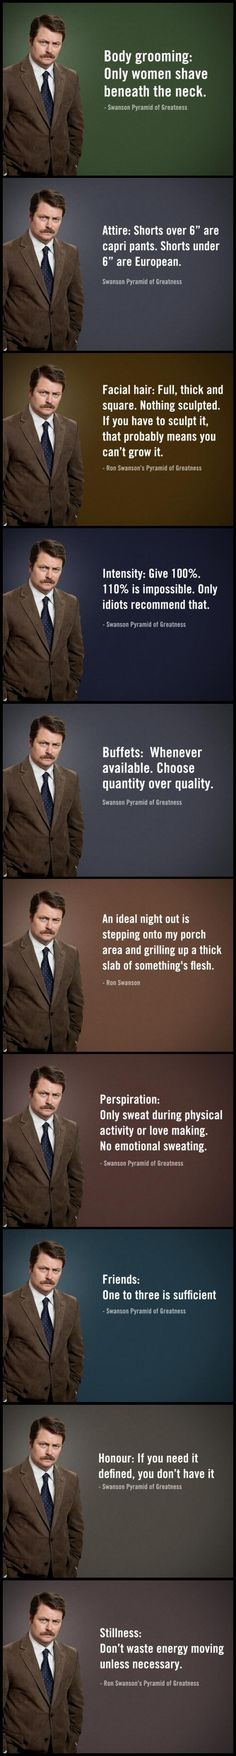 "Ron Swanson! Only problem is the one that has ""honour."" Ron Swanson wouldn't condone extra vowels in words"